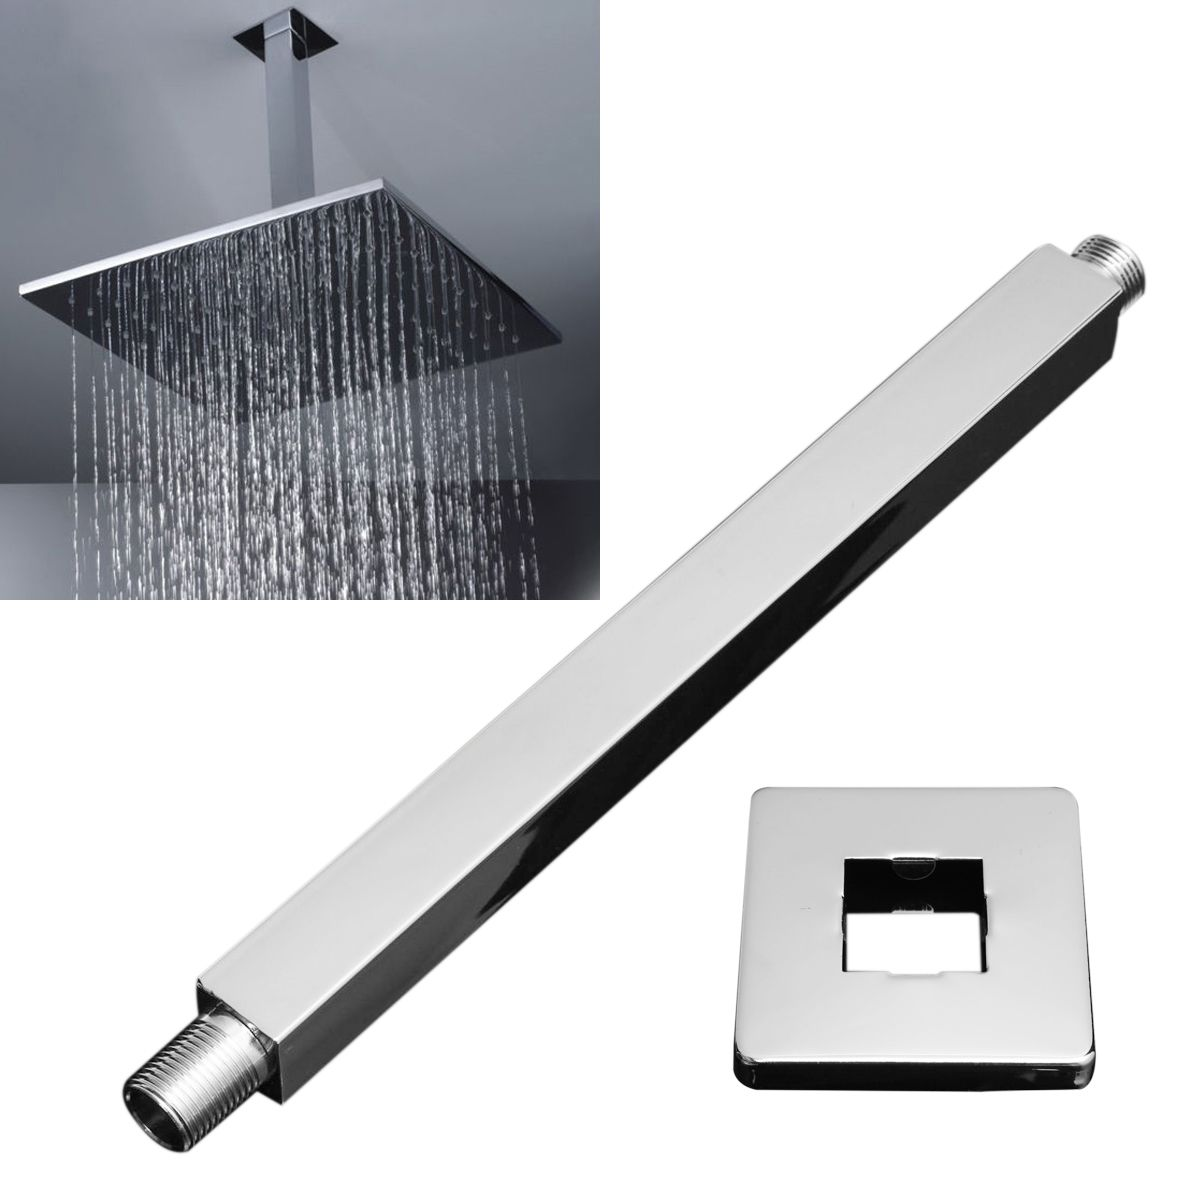 Mayitr Bathroom Square Wall Mounted Shower Extension Arm Stainless Steel Rain  Shower Head Extension Pipe 34cmPopular Extension Shower Head Buy Cheap Extension Shower Head lots  . Rain Shower Head With Extension Arm. Home Design Ideas